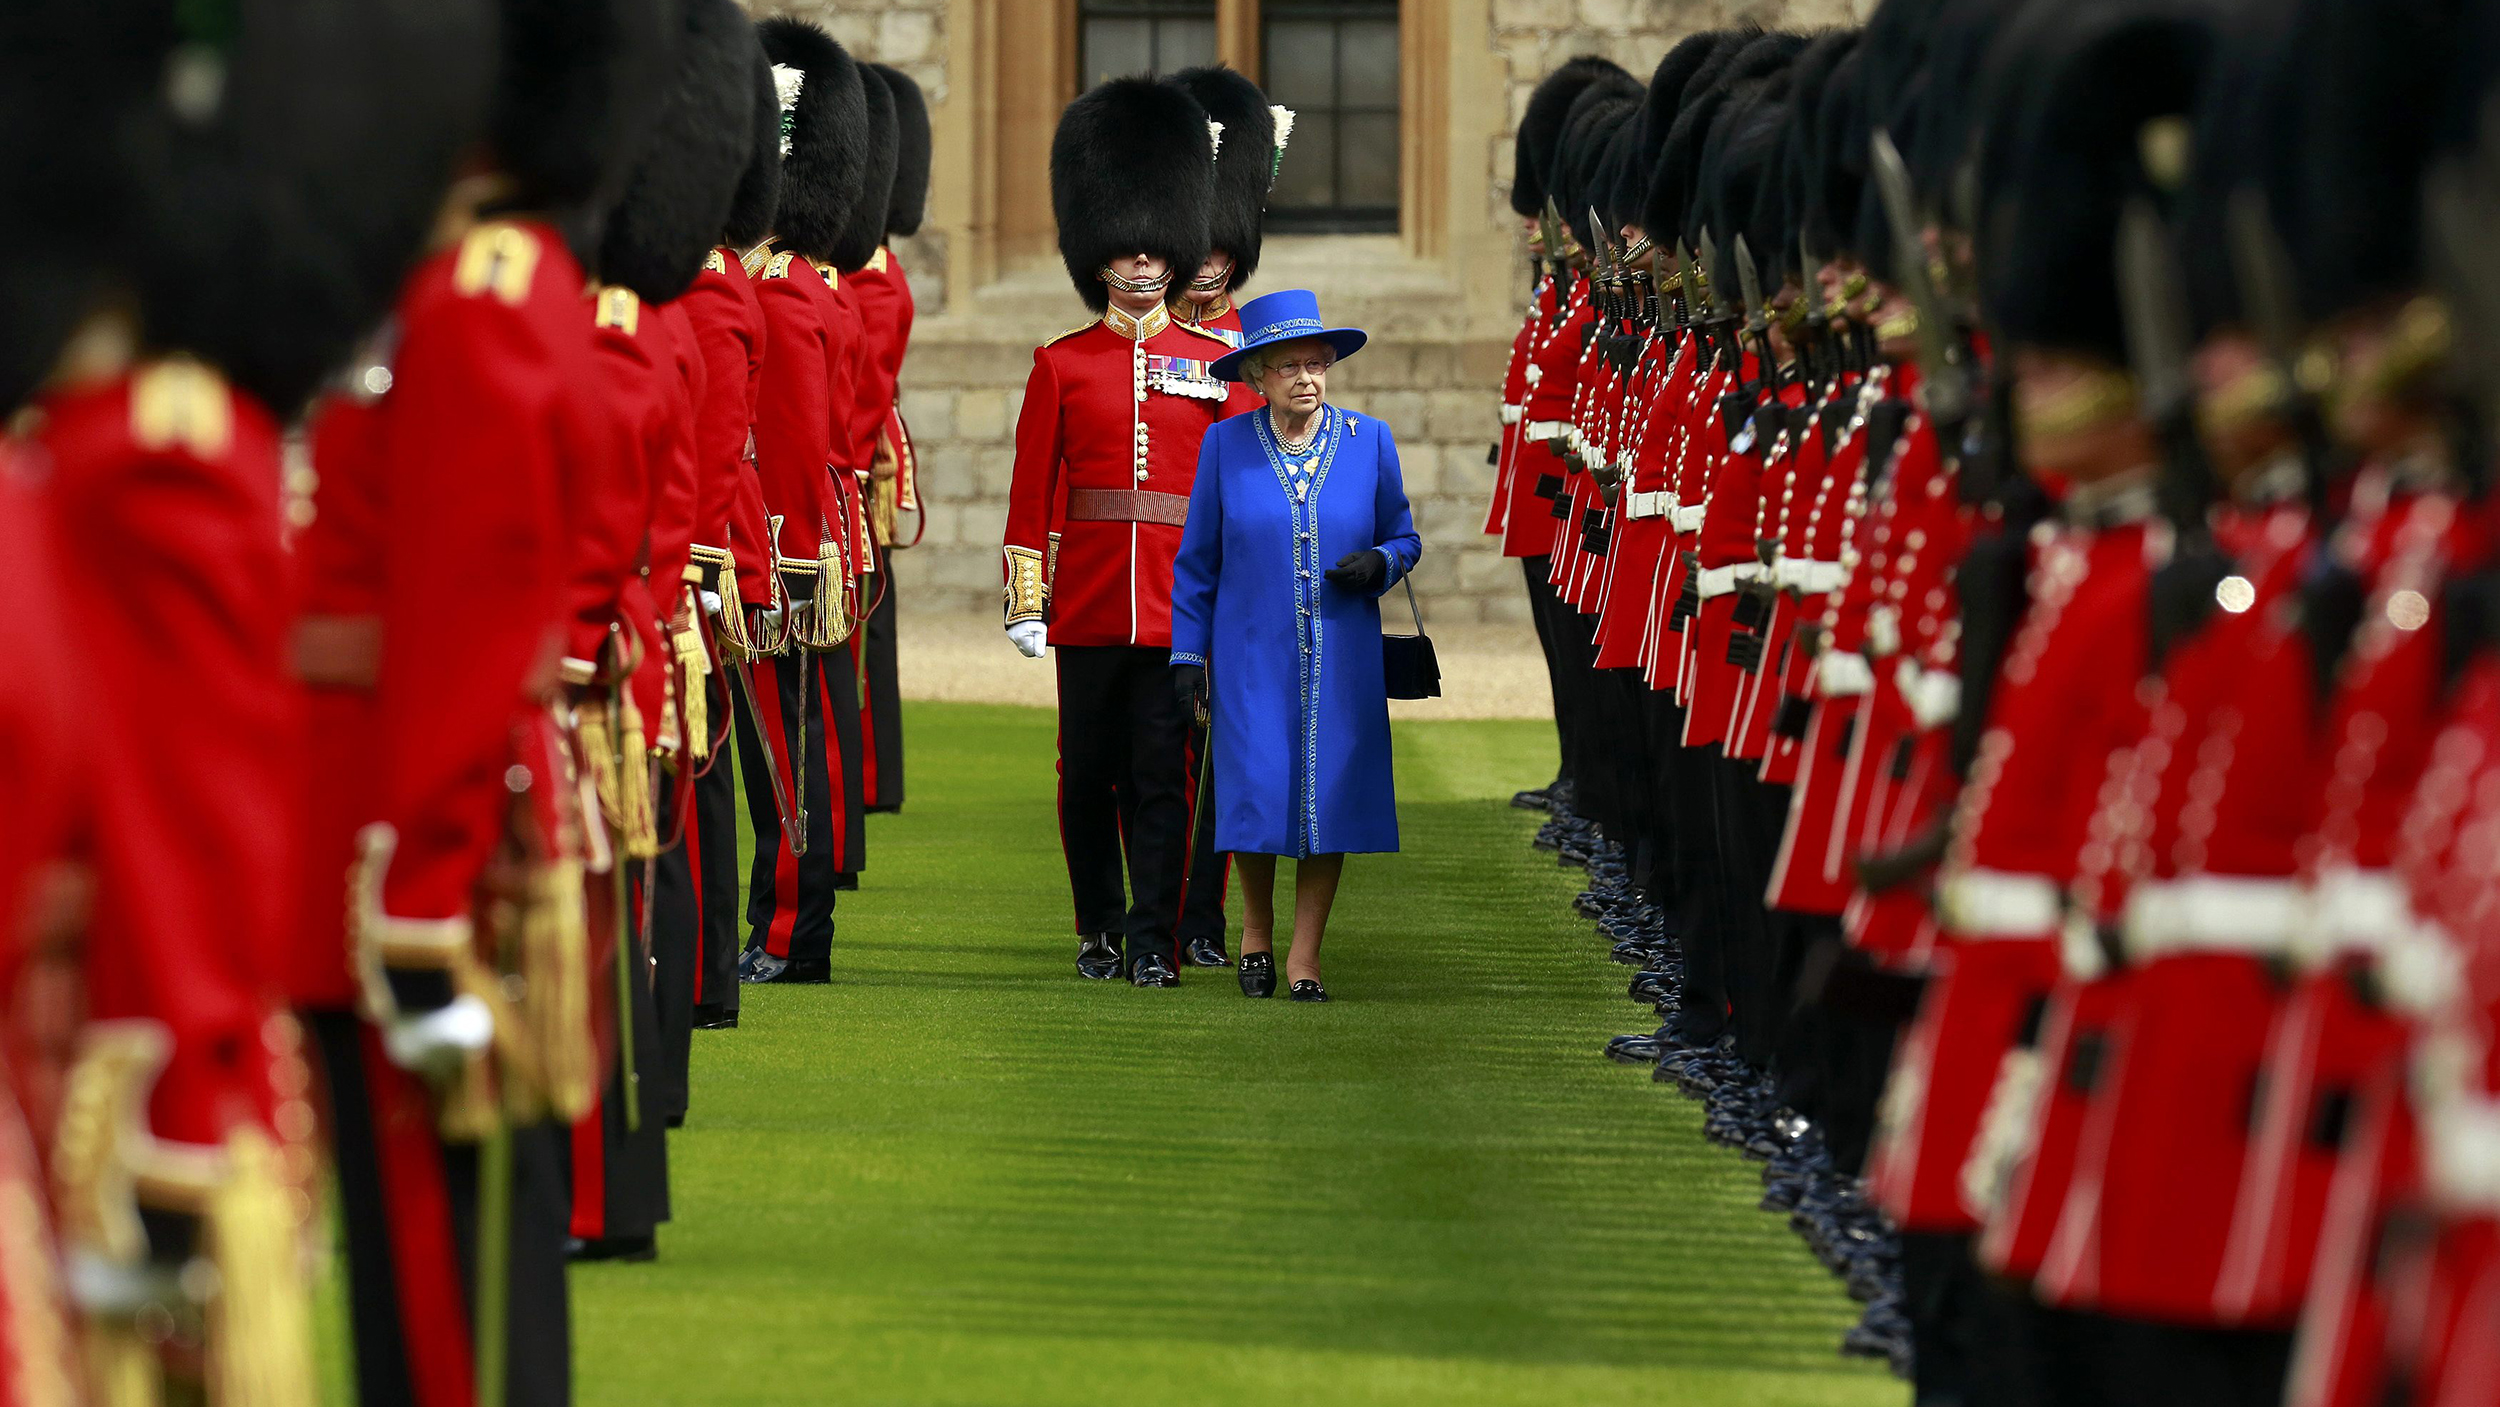 Night lights queens walk london - A Royals Themed London Trip Celebrate The Queen S 90th Birthday In Style Today Com